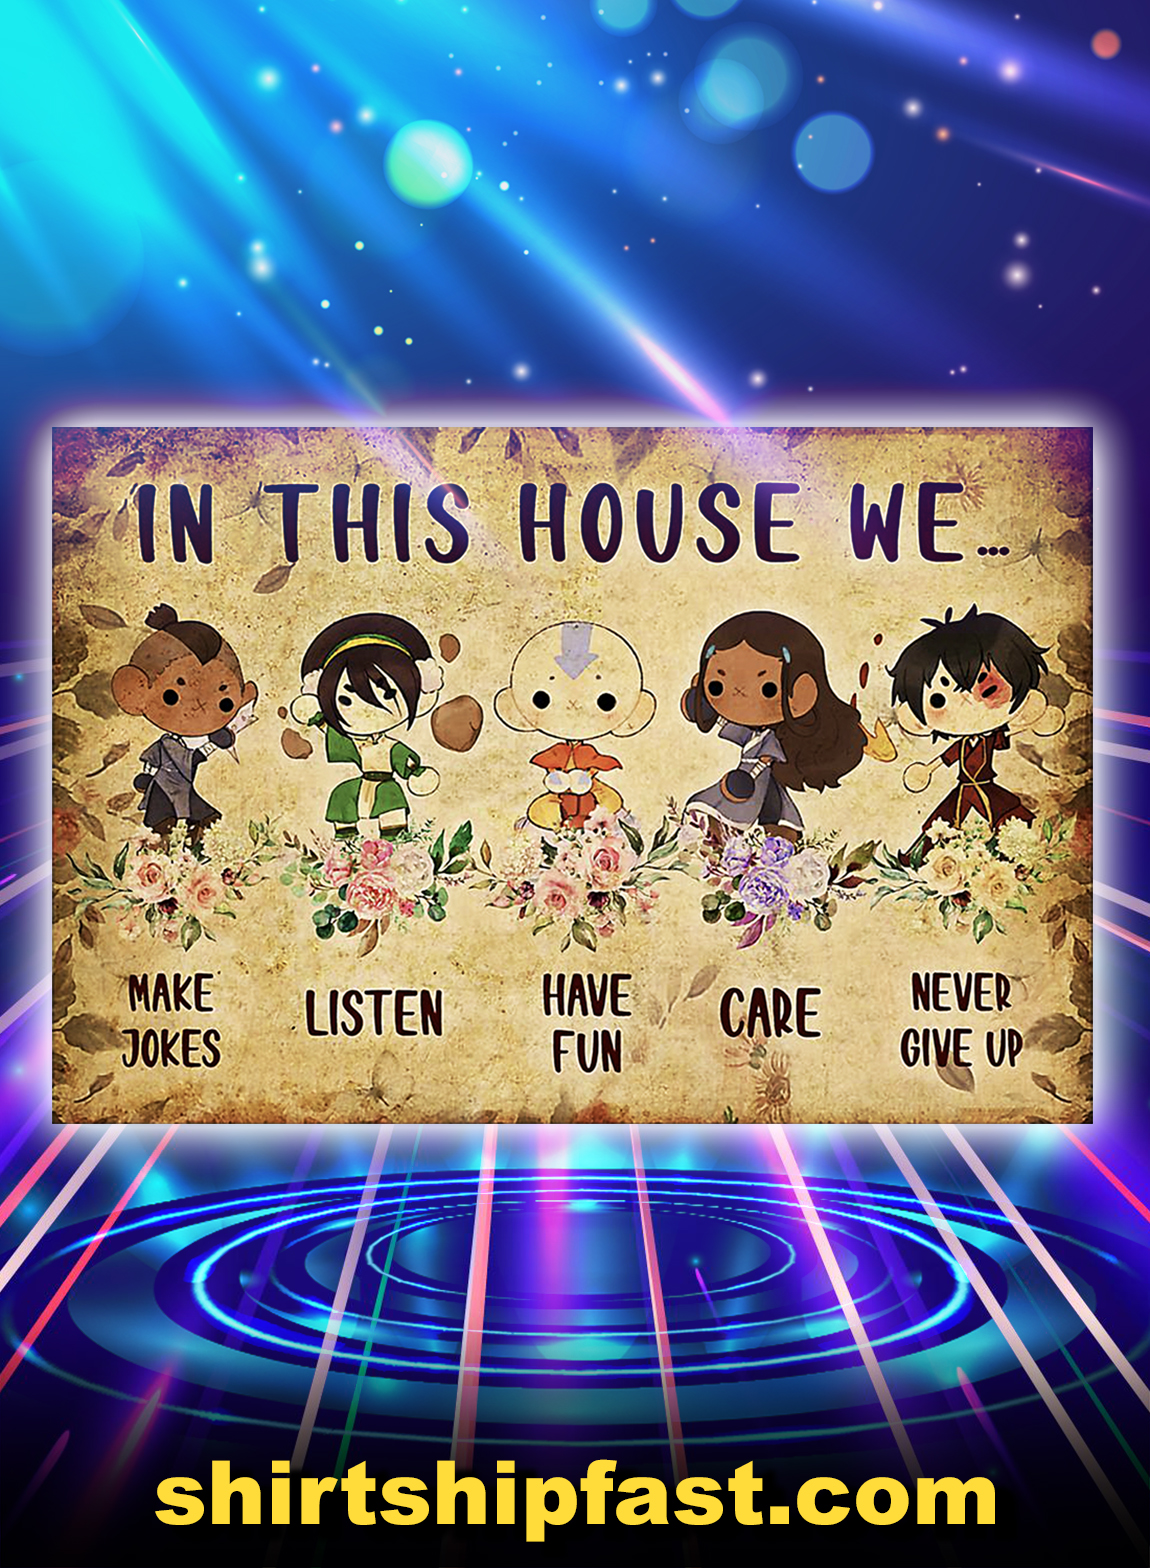 The airbender in this house we poster - A2